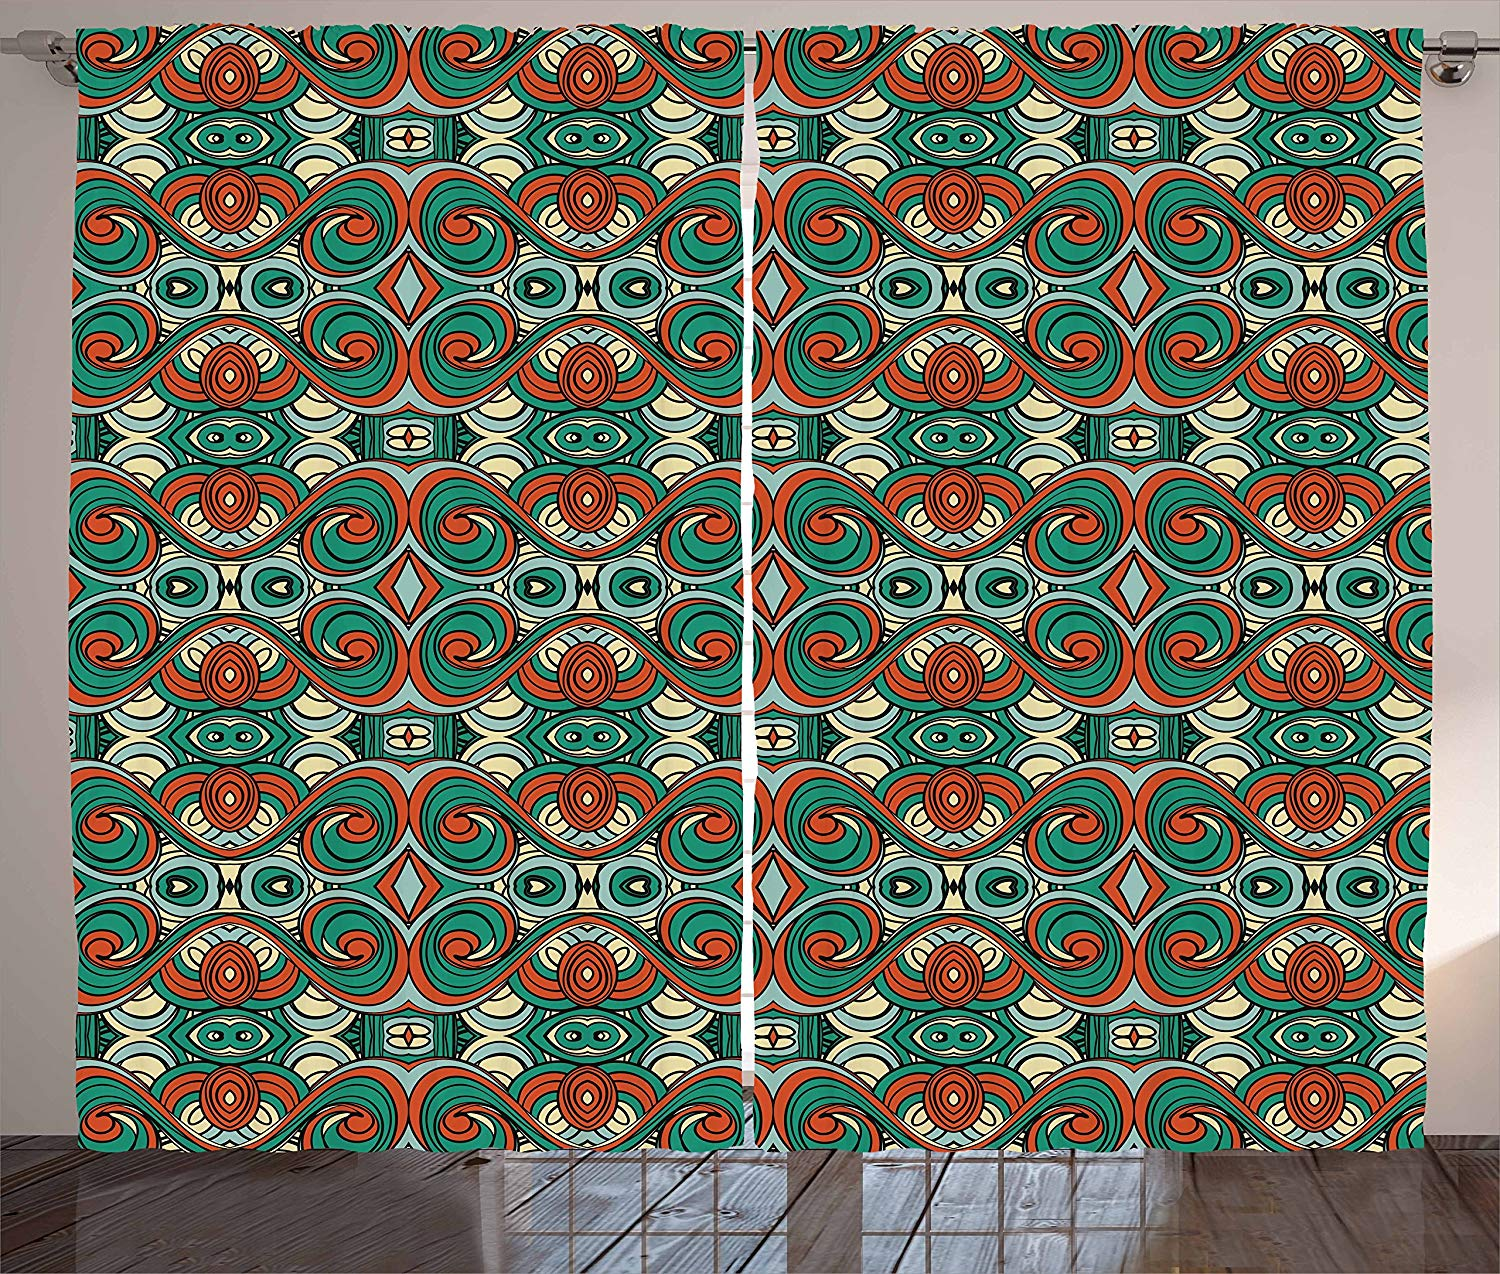 Ethnic Curtains Abstract Motifs With Swirling Wavy Details Ancient Vintage National Design Elements Living Room Bedroom Window